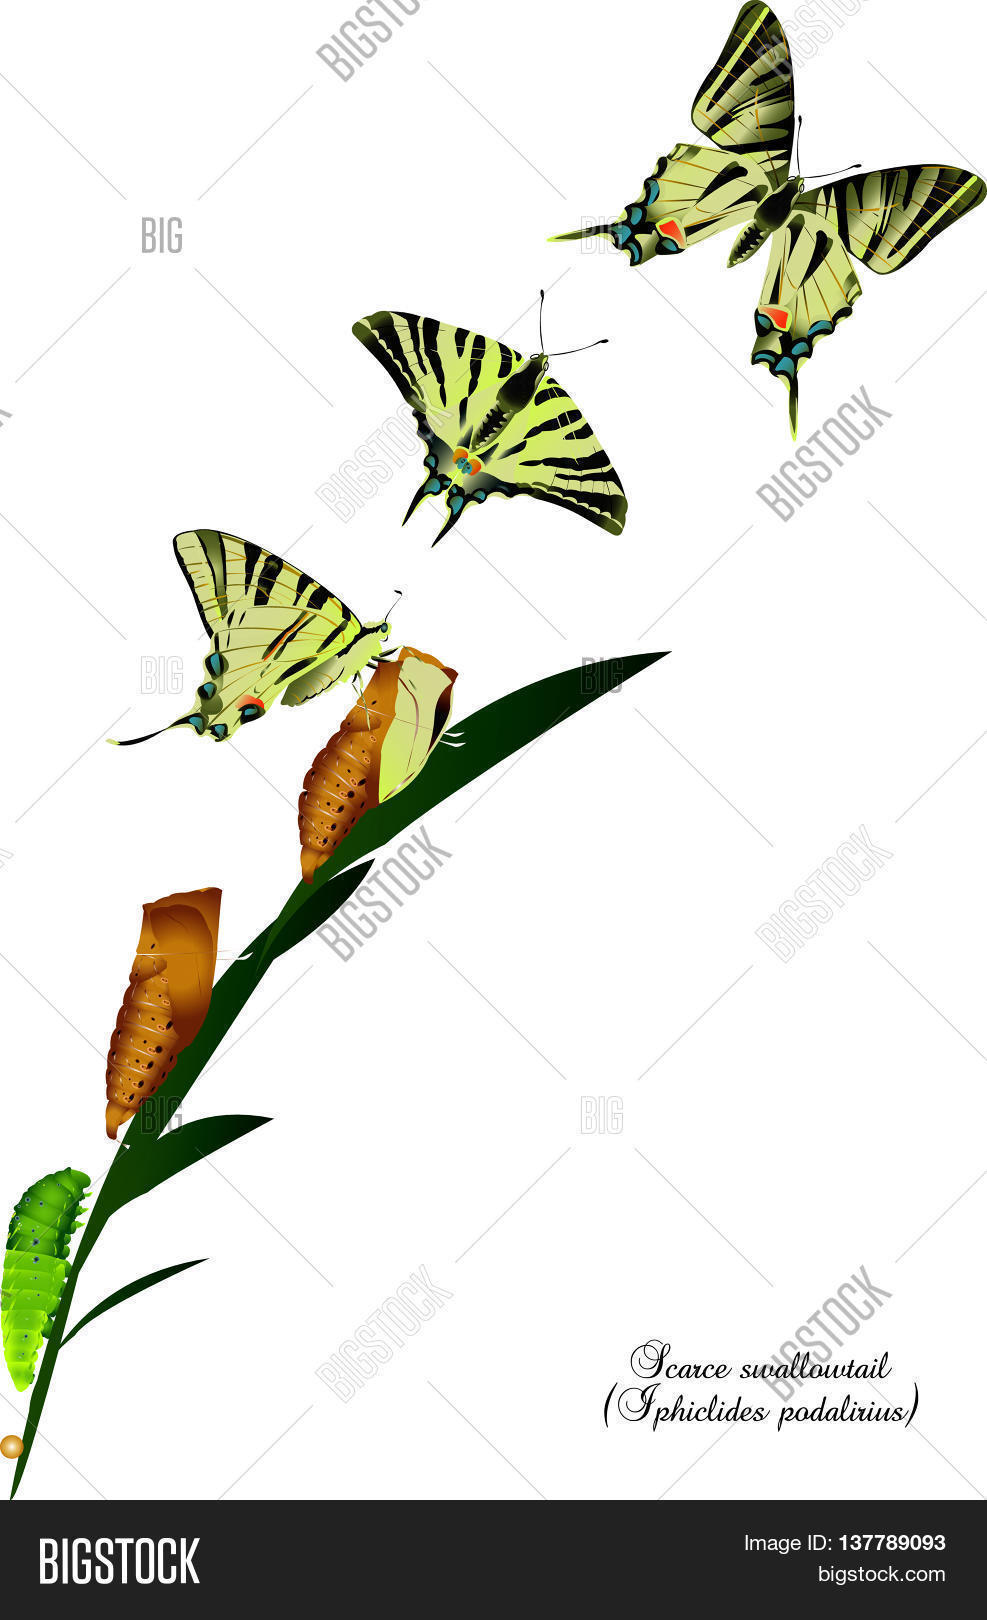 It is illustration of life cycle of scarce swallowtail. Stock.